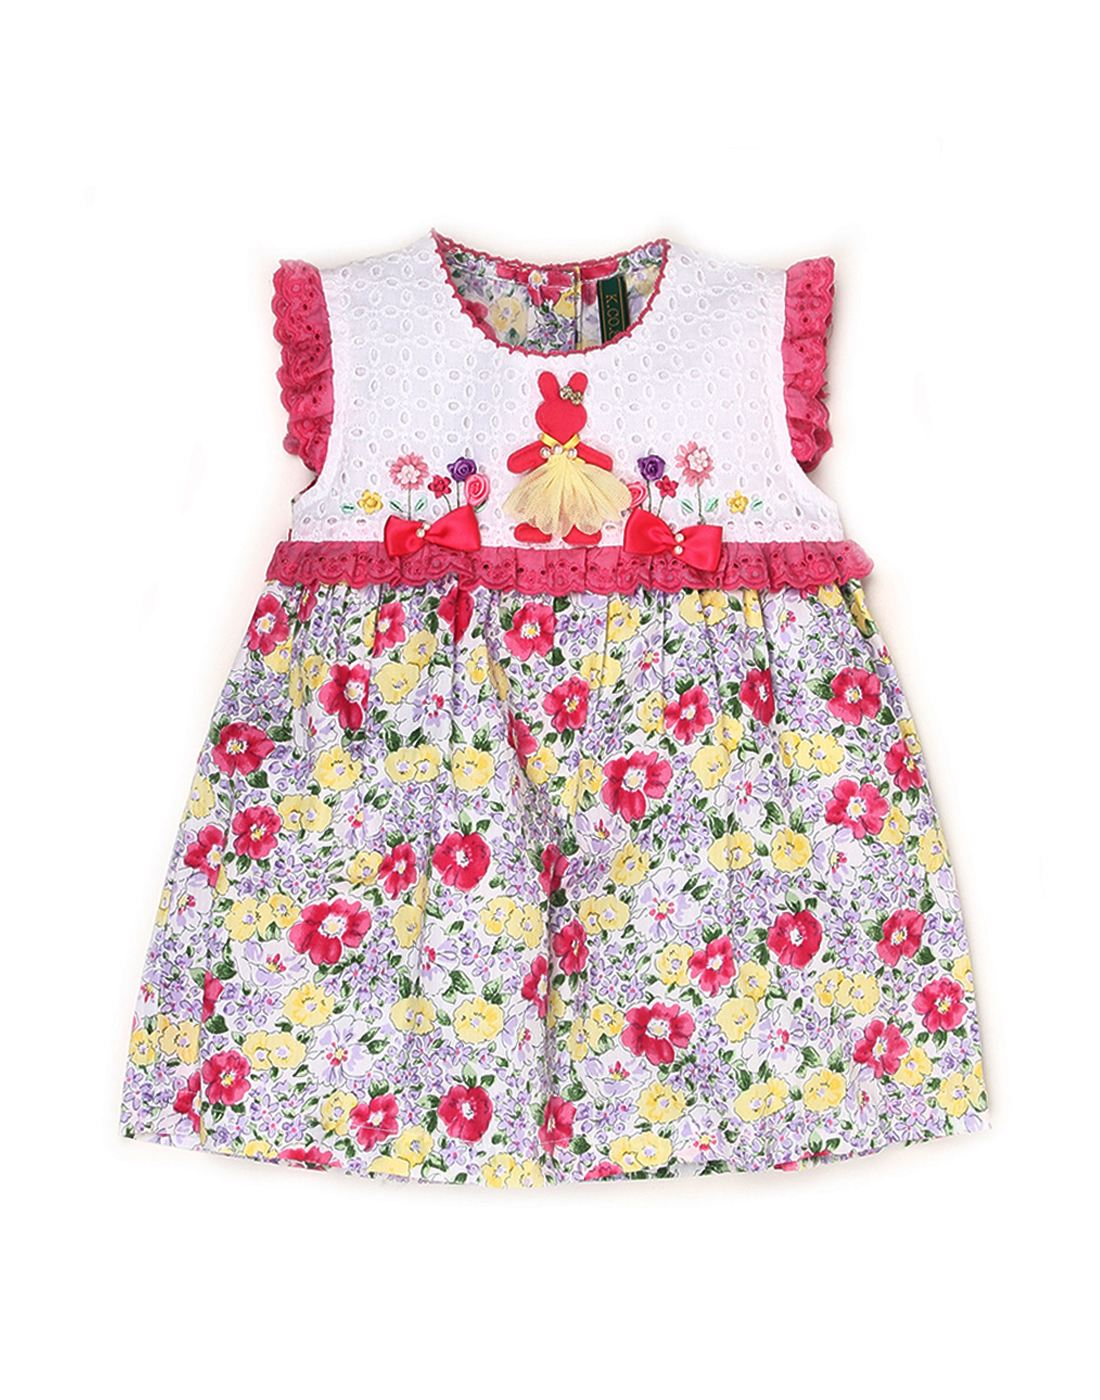 K.C.O 89 Baby Girls Casual Floral Print Sleeveless Frock